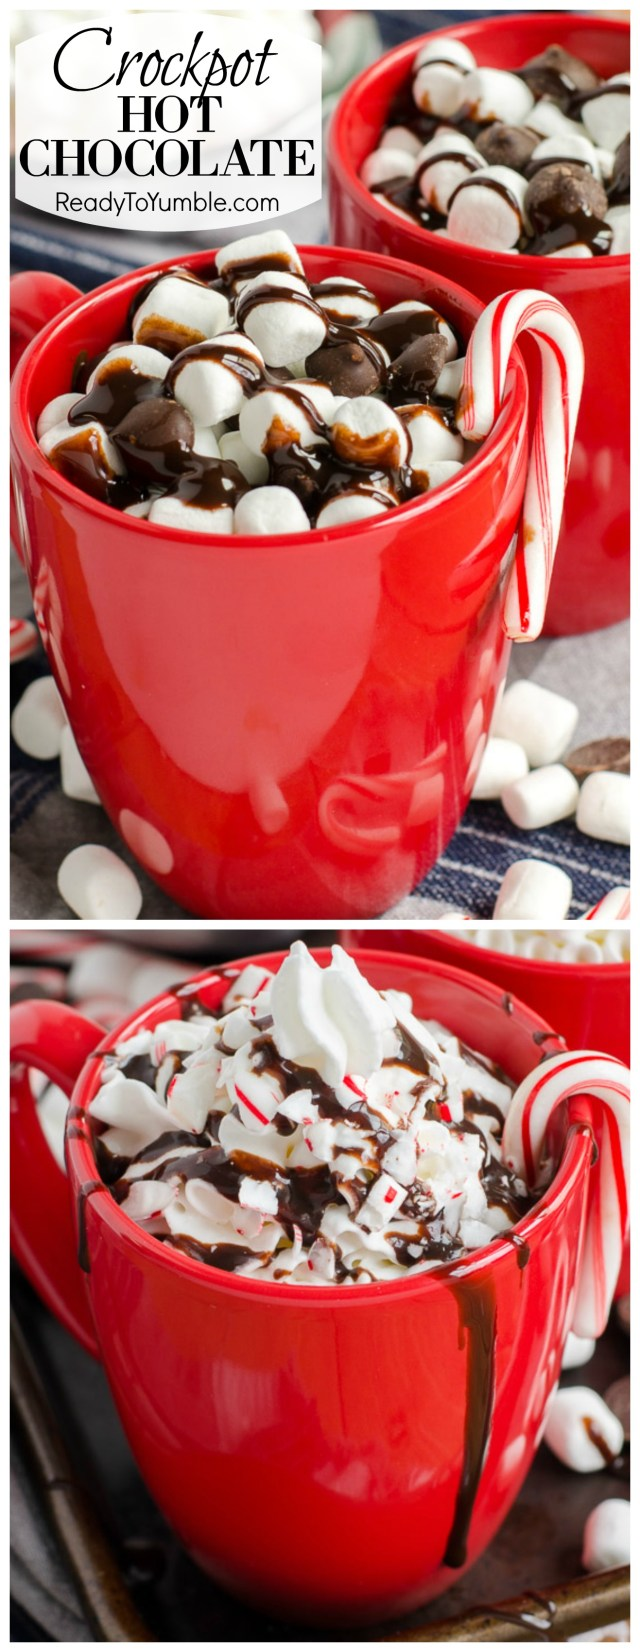 Crockpot Hot Chocolate - Ready to Yumble